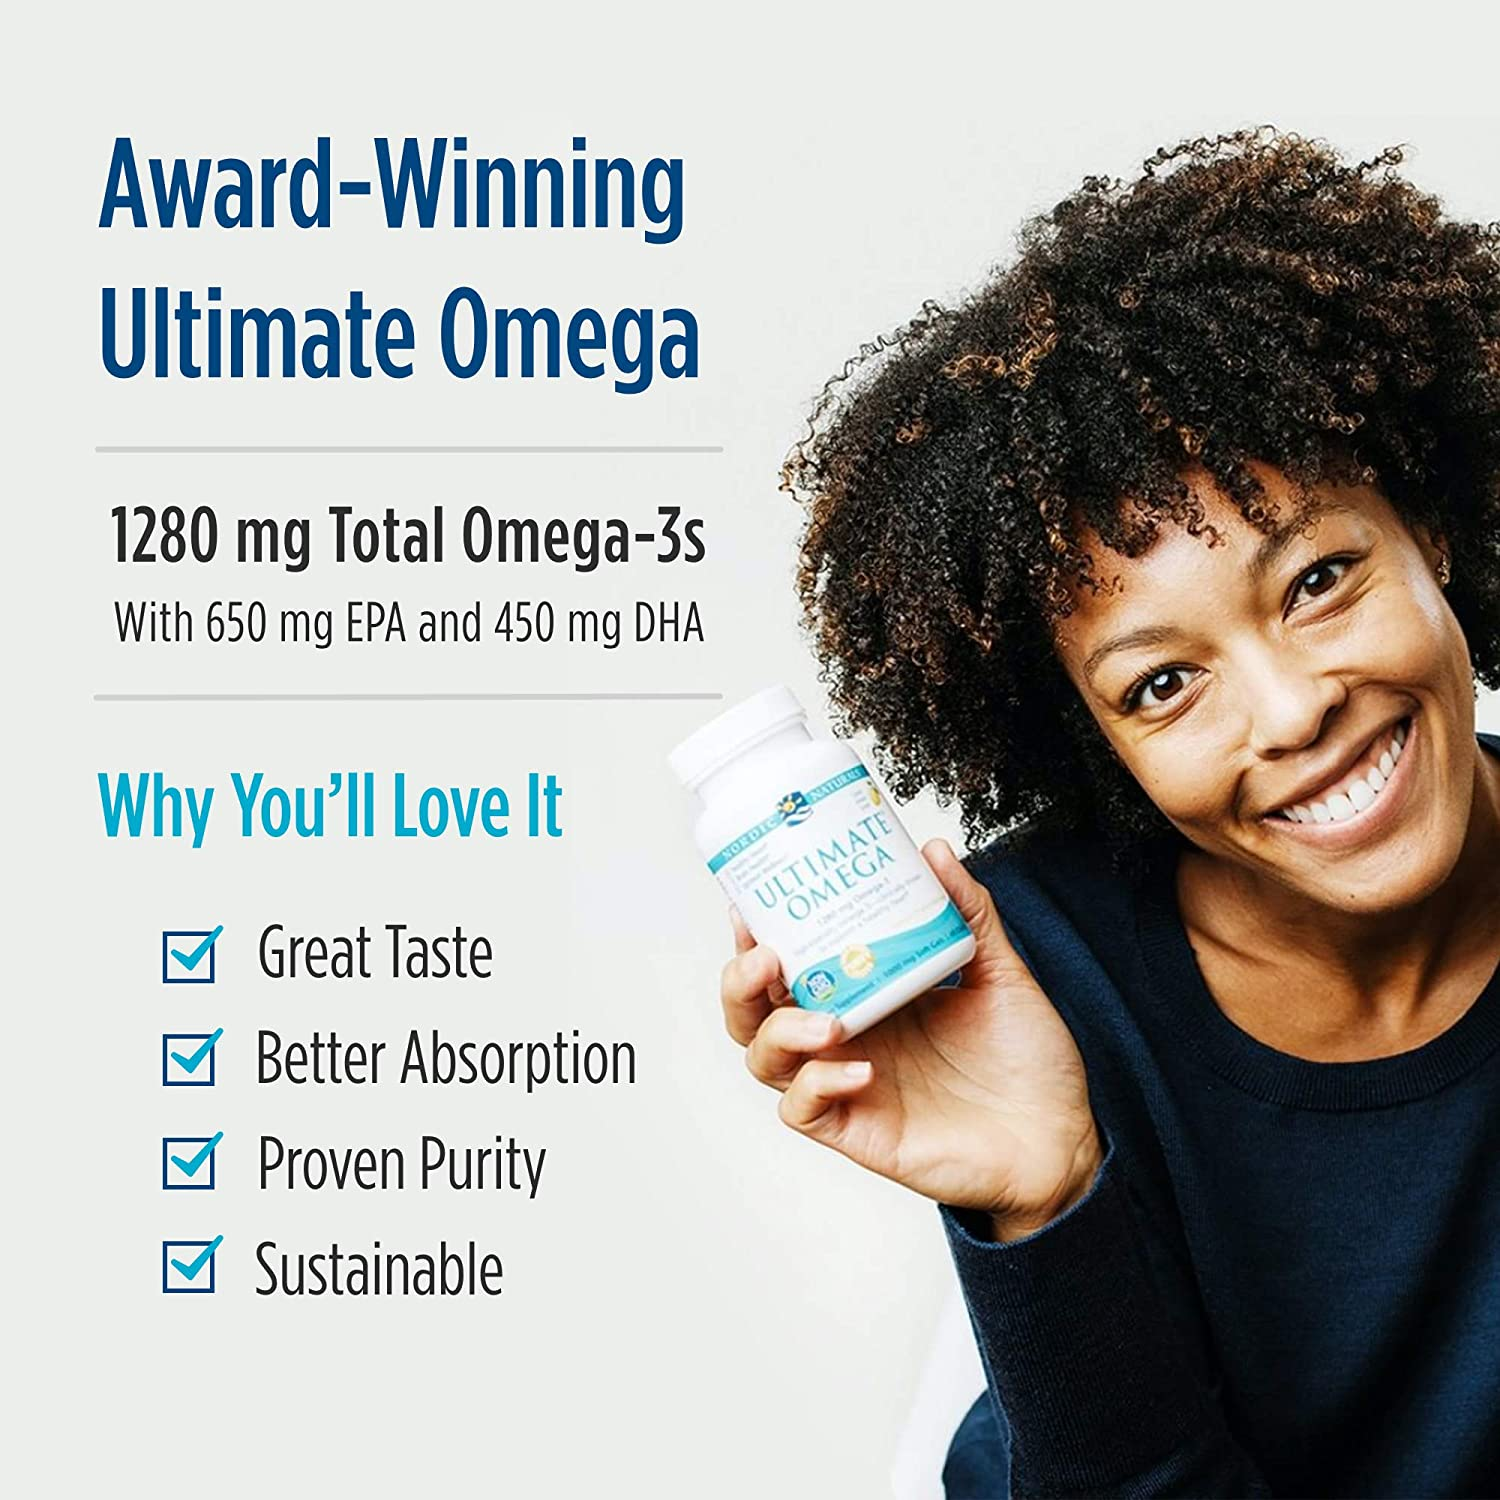 Nordic Naturals Ultimate Omega, Lemon Flavor - 1280 mg Omega-3-2 Pack - 360 Total Soft Gels - High-Potency Omega-3 Fish Oil with EPA & DHA - Promotes Brain & Heart Health - Non-GMO - 180 Servings